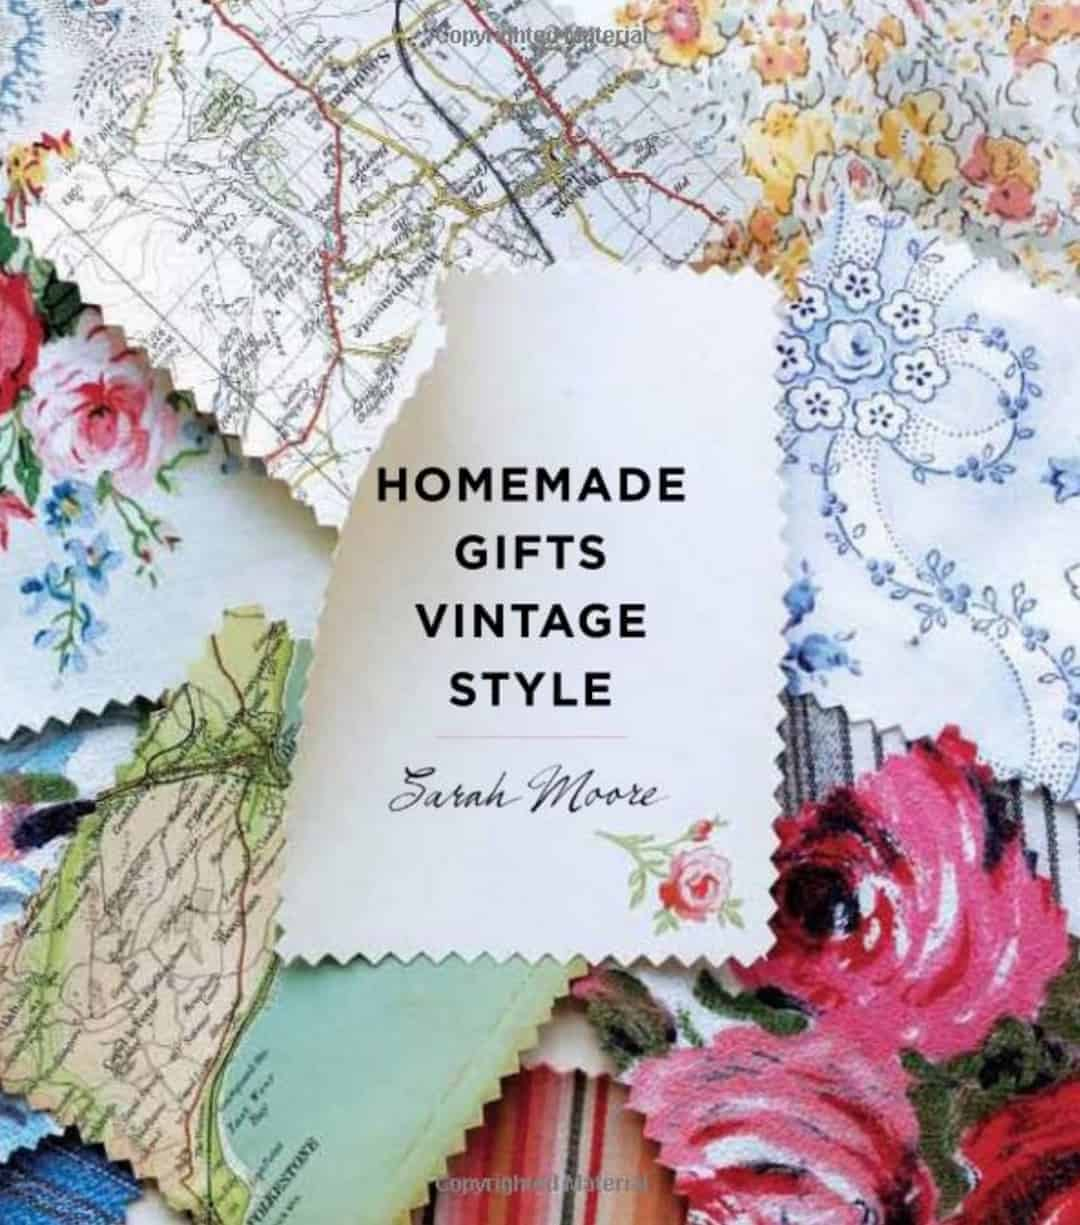 homemade gifts vintage style sarah moore